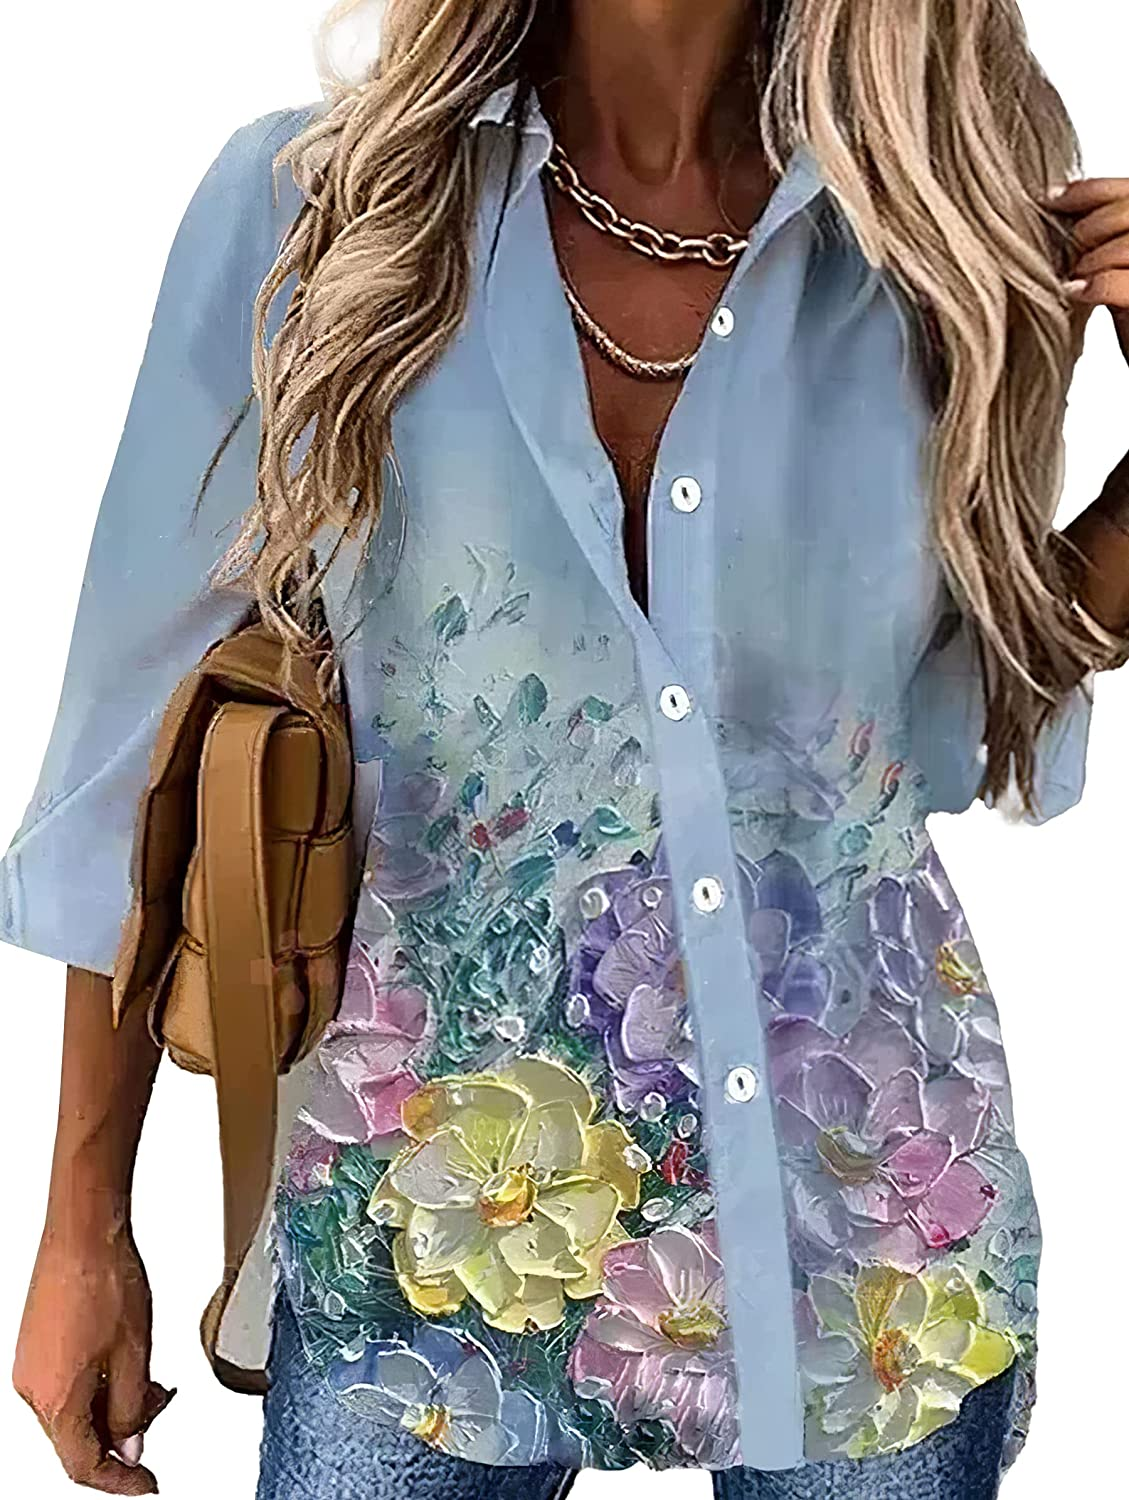 Women's Fashion Floral Print Button Down Shirts V Neck Long Sleeve Blouses Tops